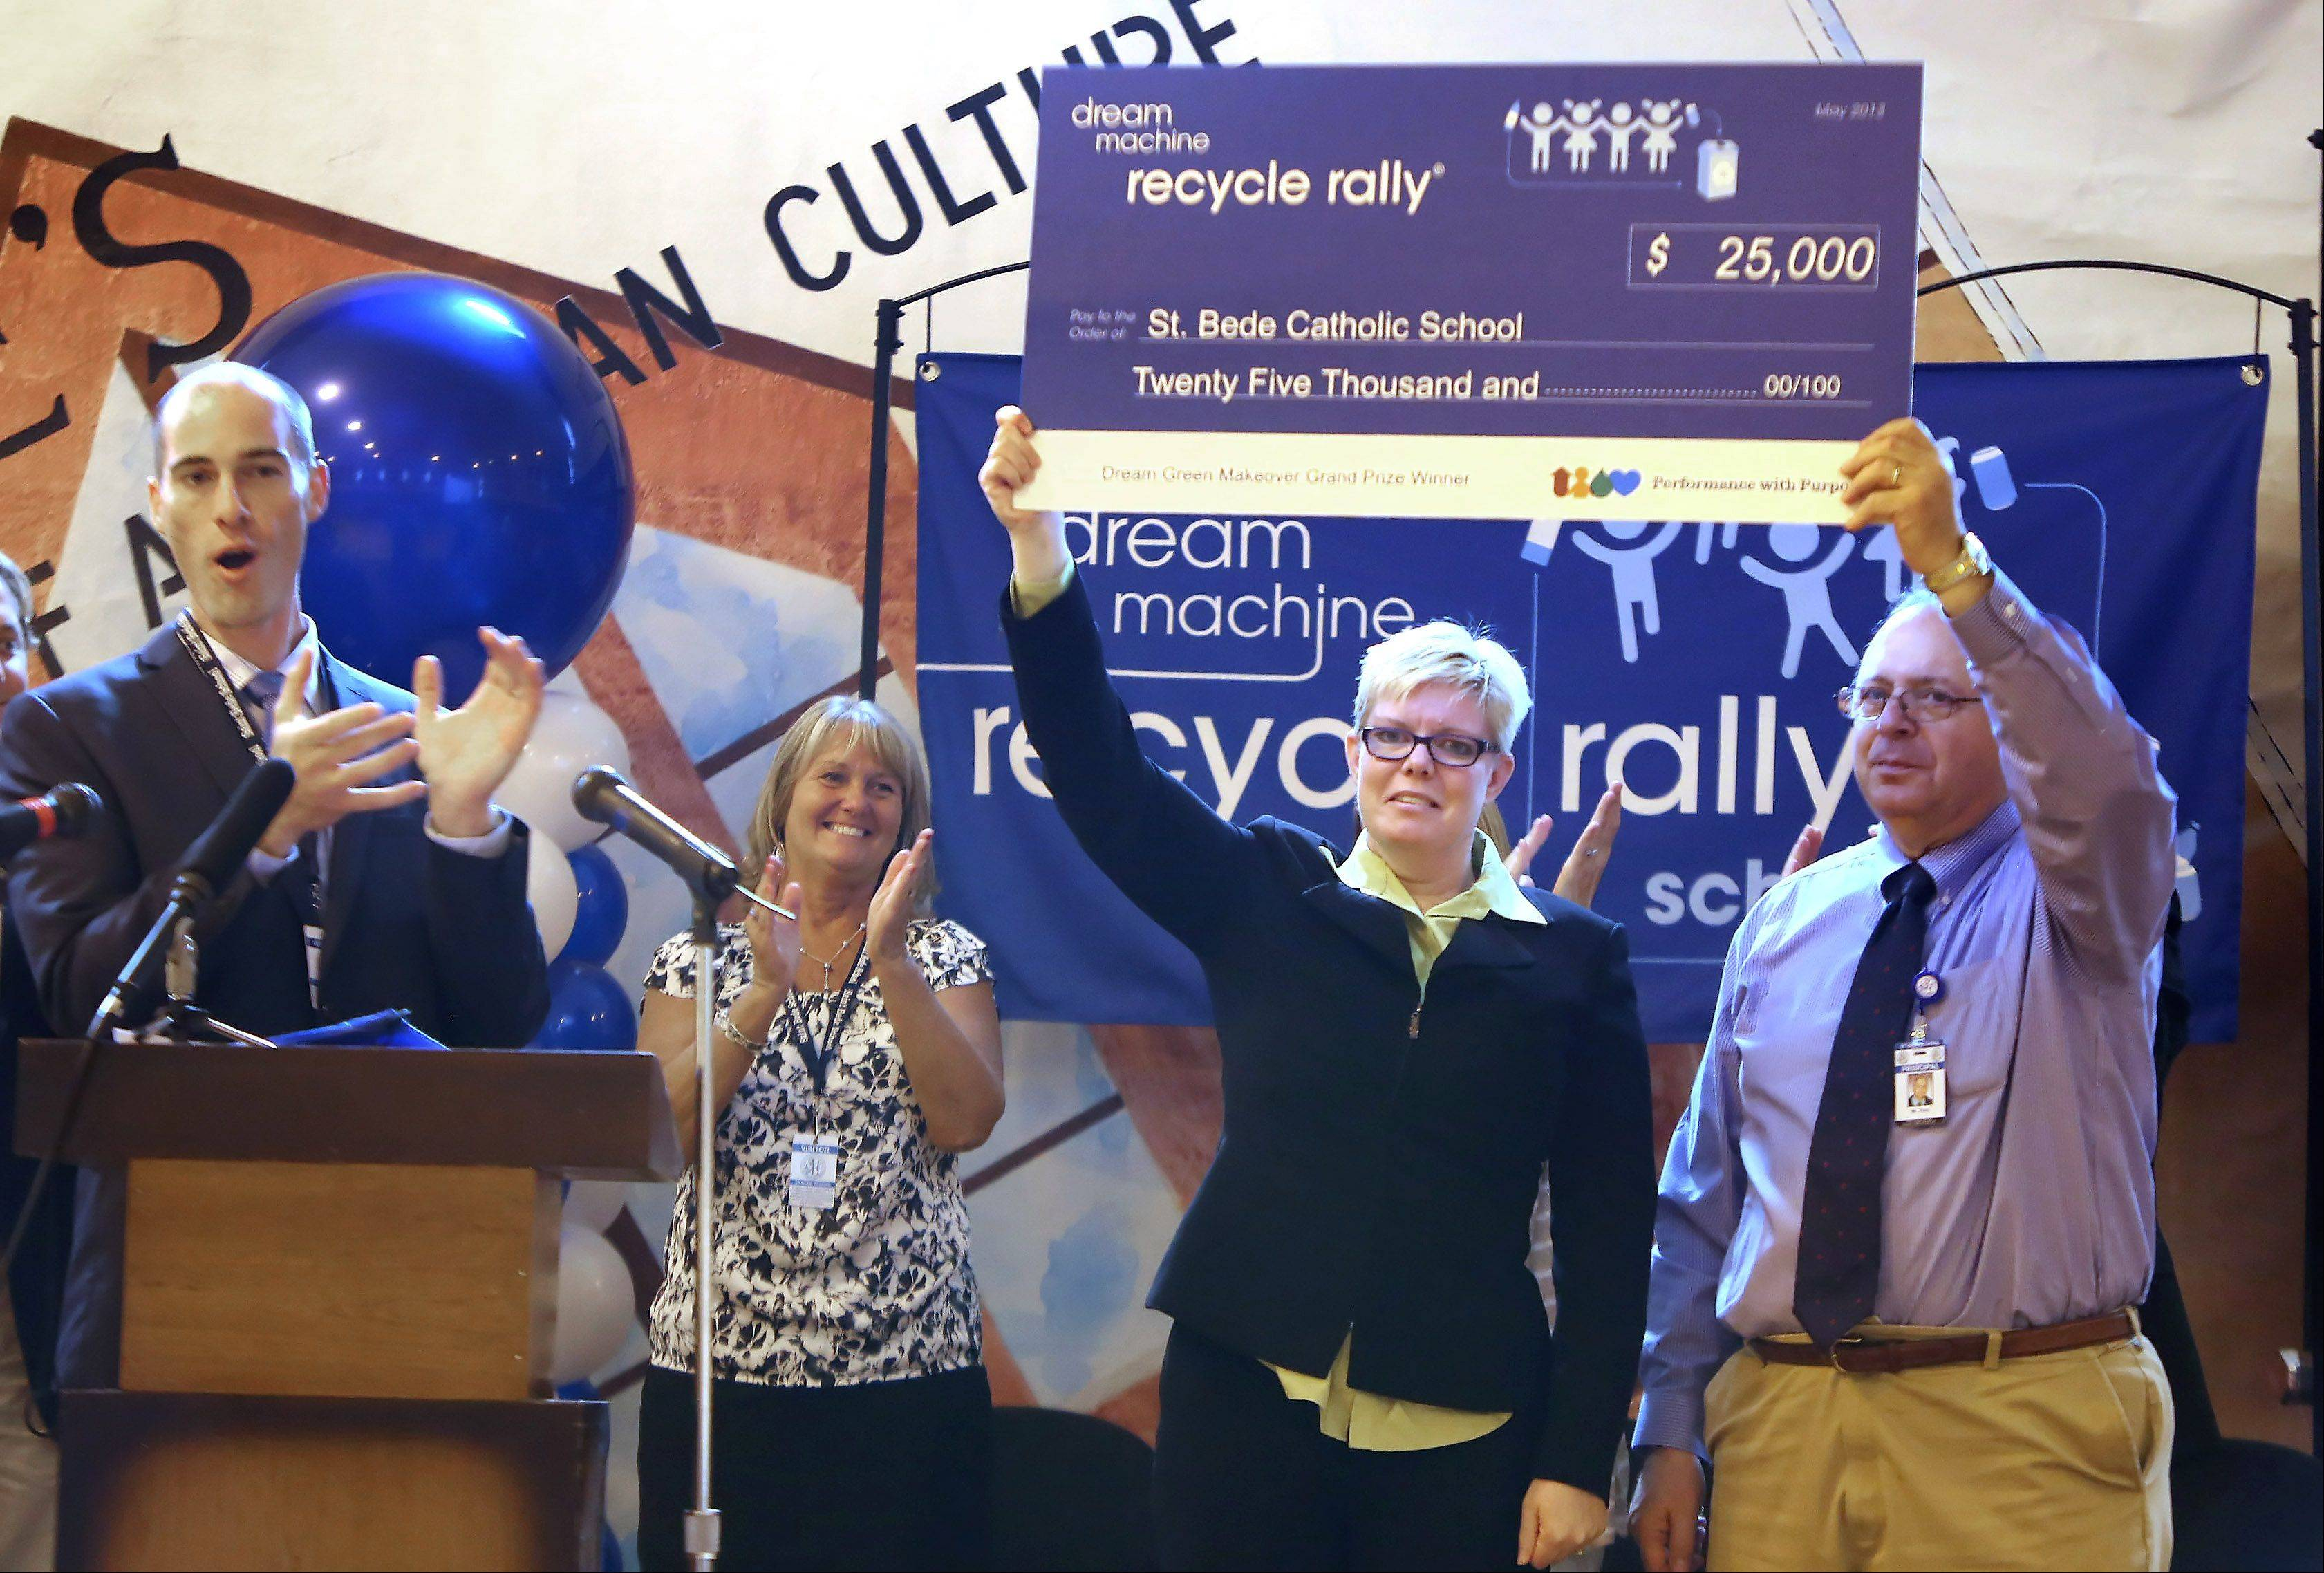 PepsiCo executive Tom Mooradian, left, applauds after handing a $25,000 check to St. Bede Catholic School PTA President Gretchen Renlund and Principal Charles Pinto during a celebration Wednesday. The Ingleside school won a grand prize in the Dream Machine Recycle Rally program.